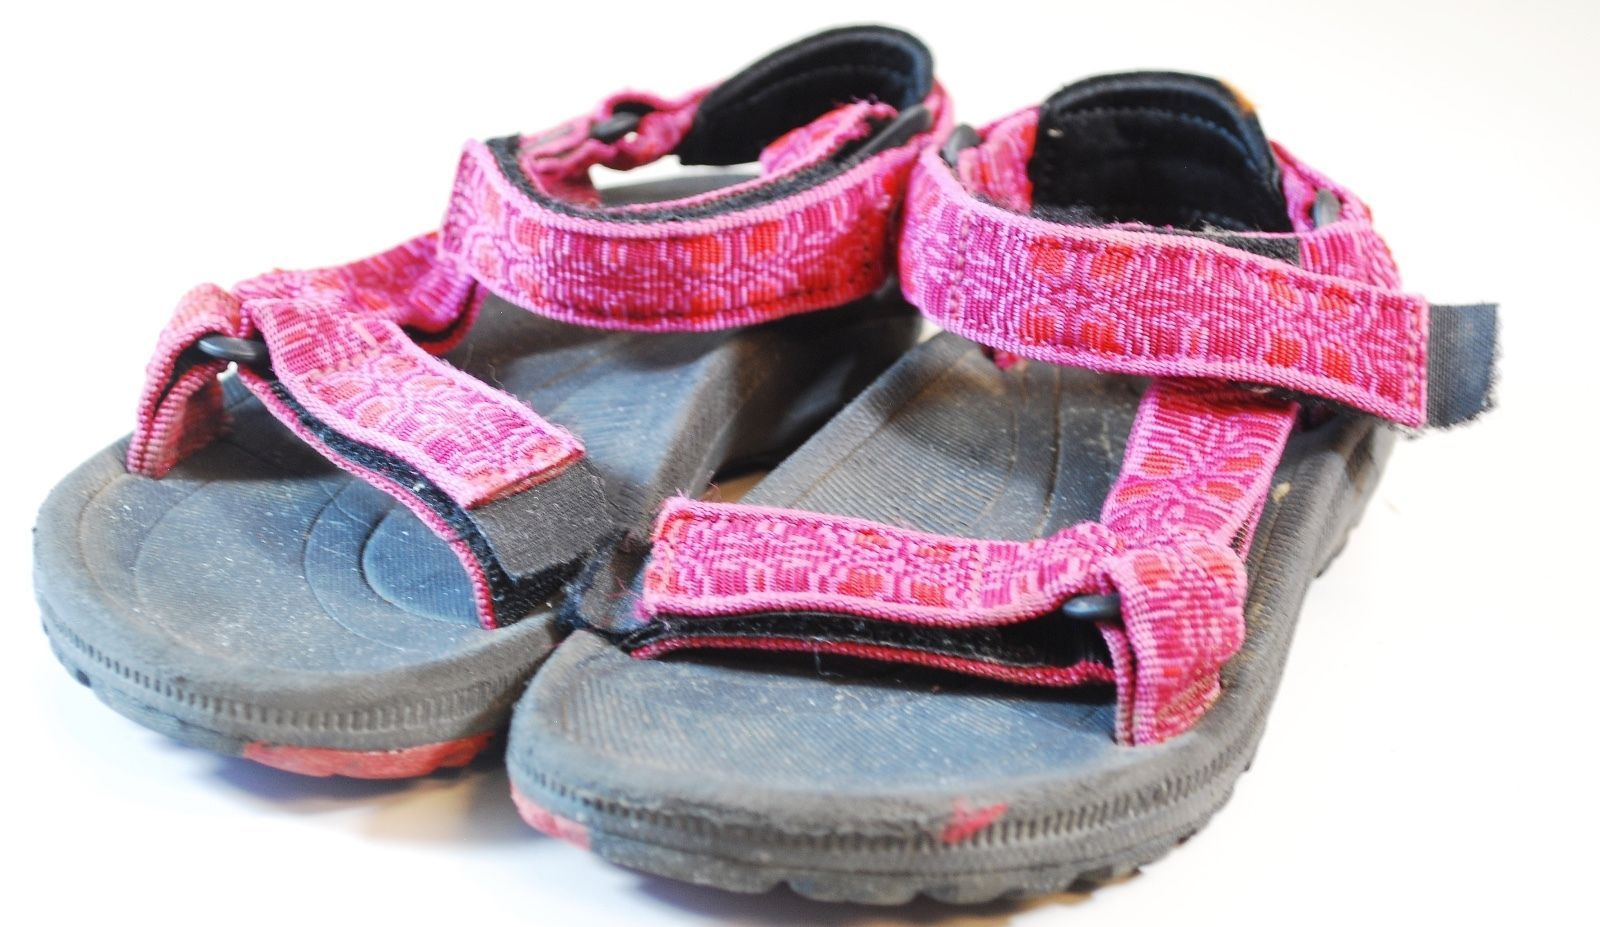 02b685c4045 TEVA Sport Strap Sandals - Red Pink - Girls and 50 similar items